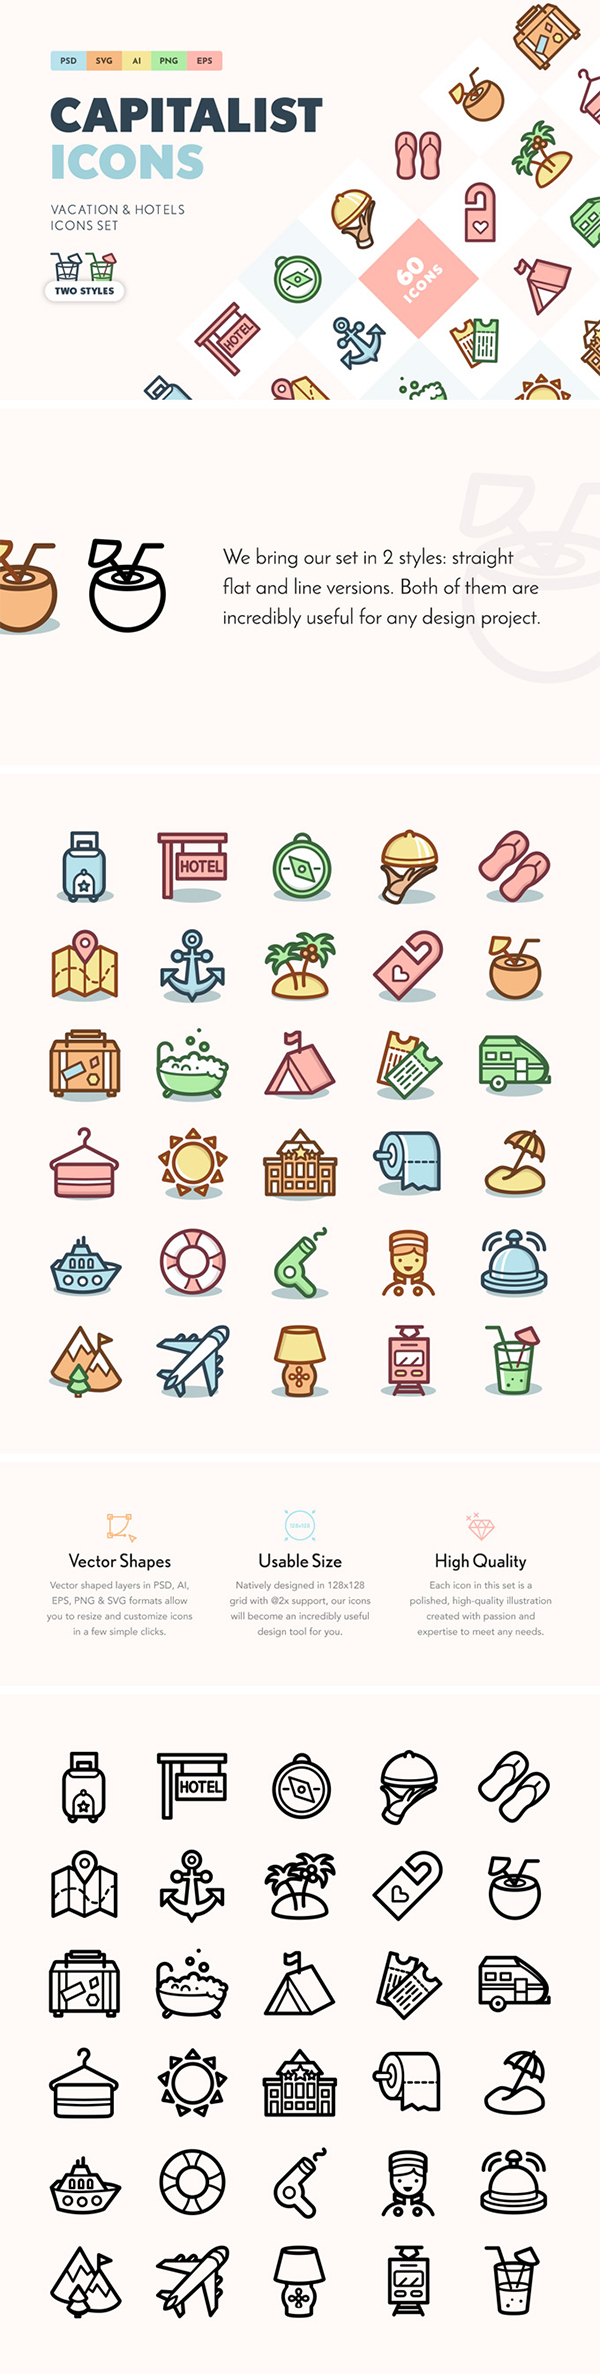 Capitalist Vacation & Hotels Icons